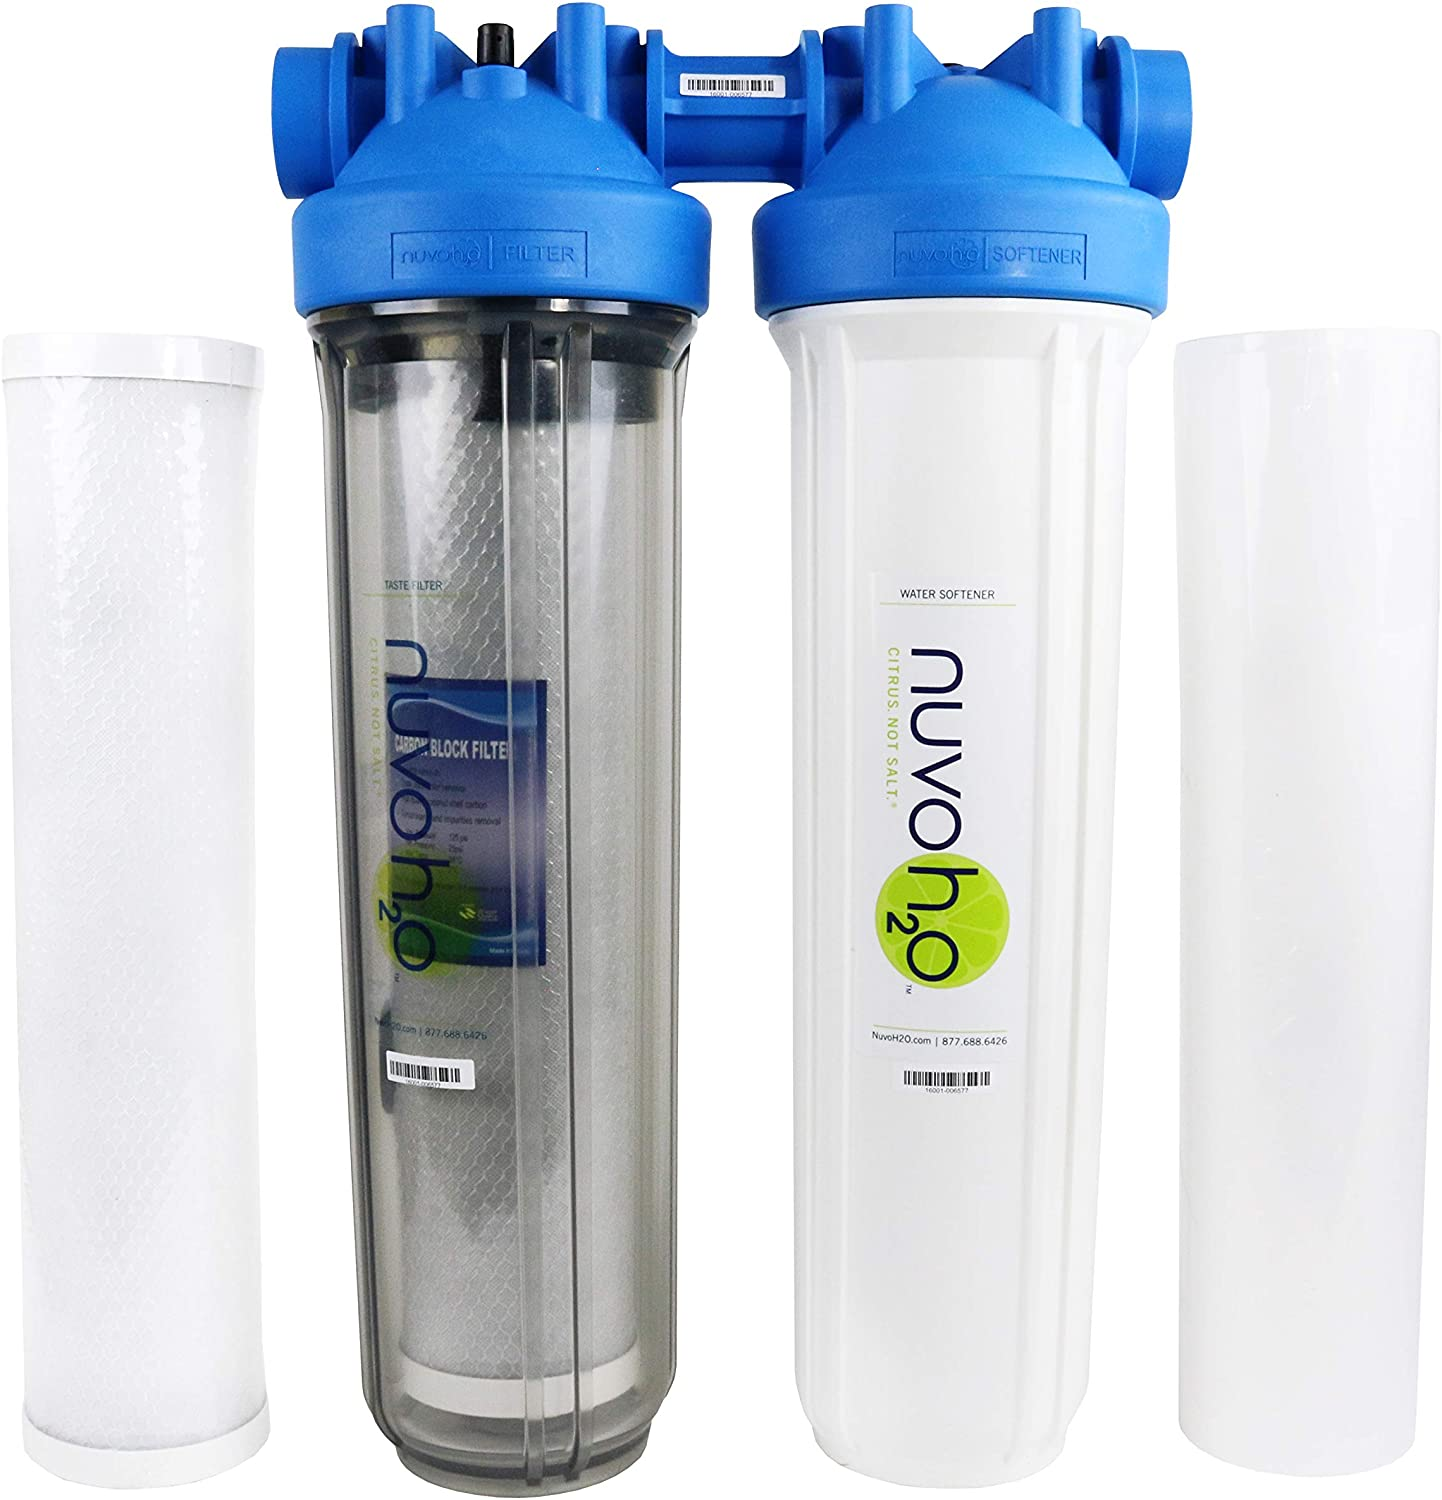 Dealing full price reduction NuvoH2O Manor + Taste Complete System Softener Includes 1 Ranking TOP15 Water